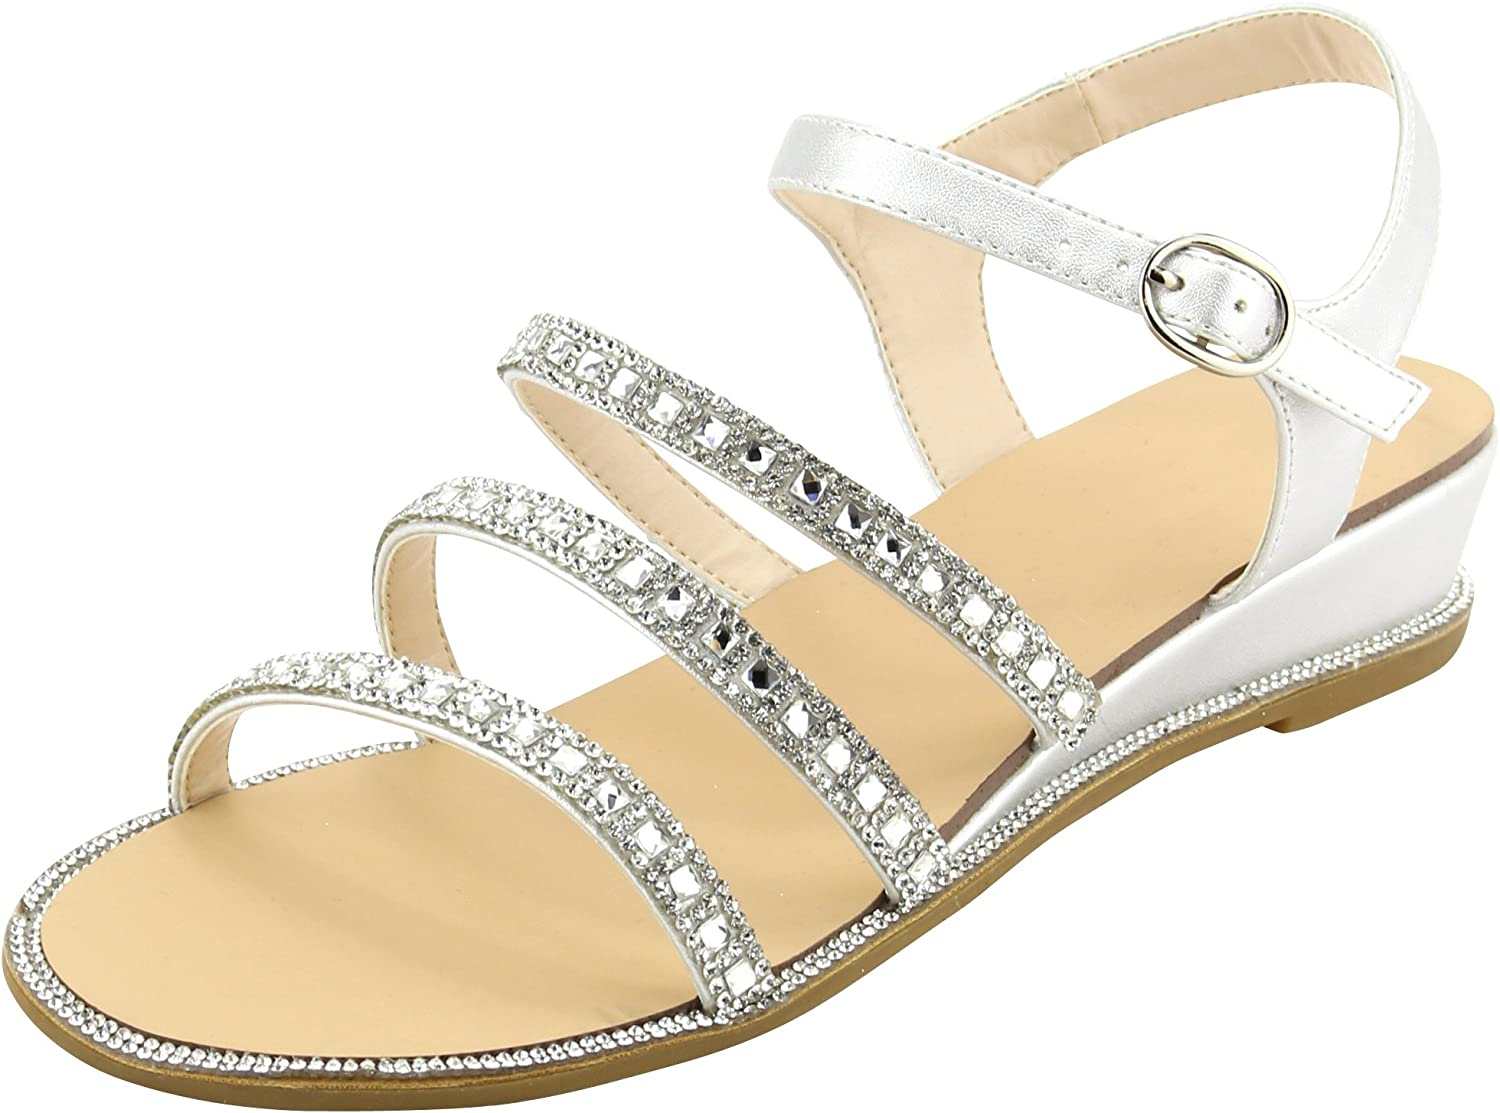 Cambridge Select Women's Open Toe Buckle Ankle Strappy Crystal Rhinestone Low Wedge Sandal